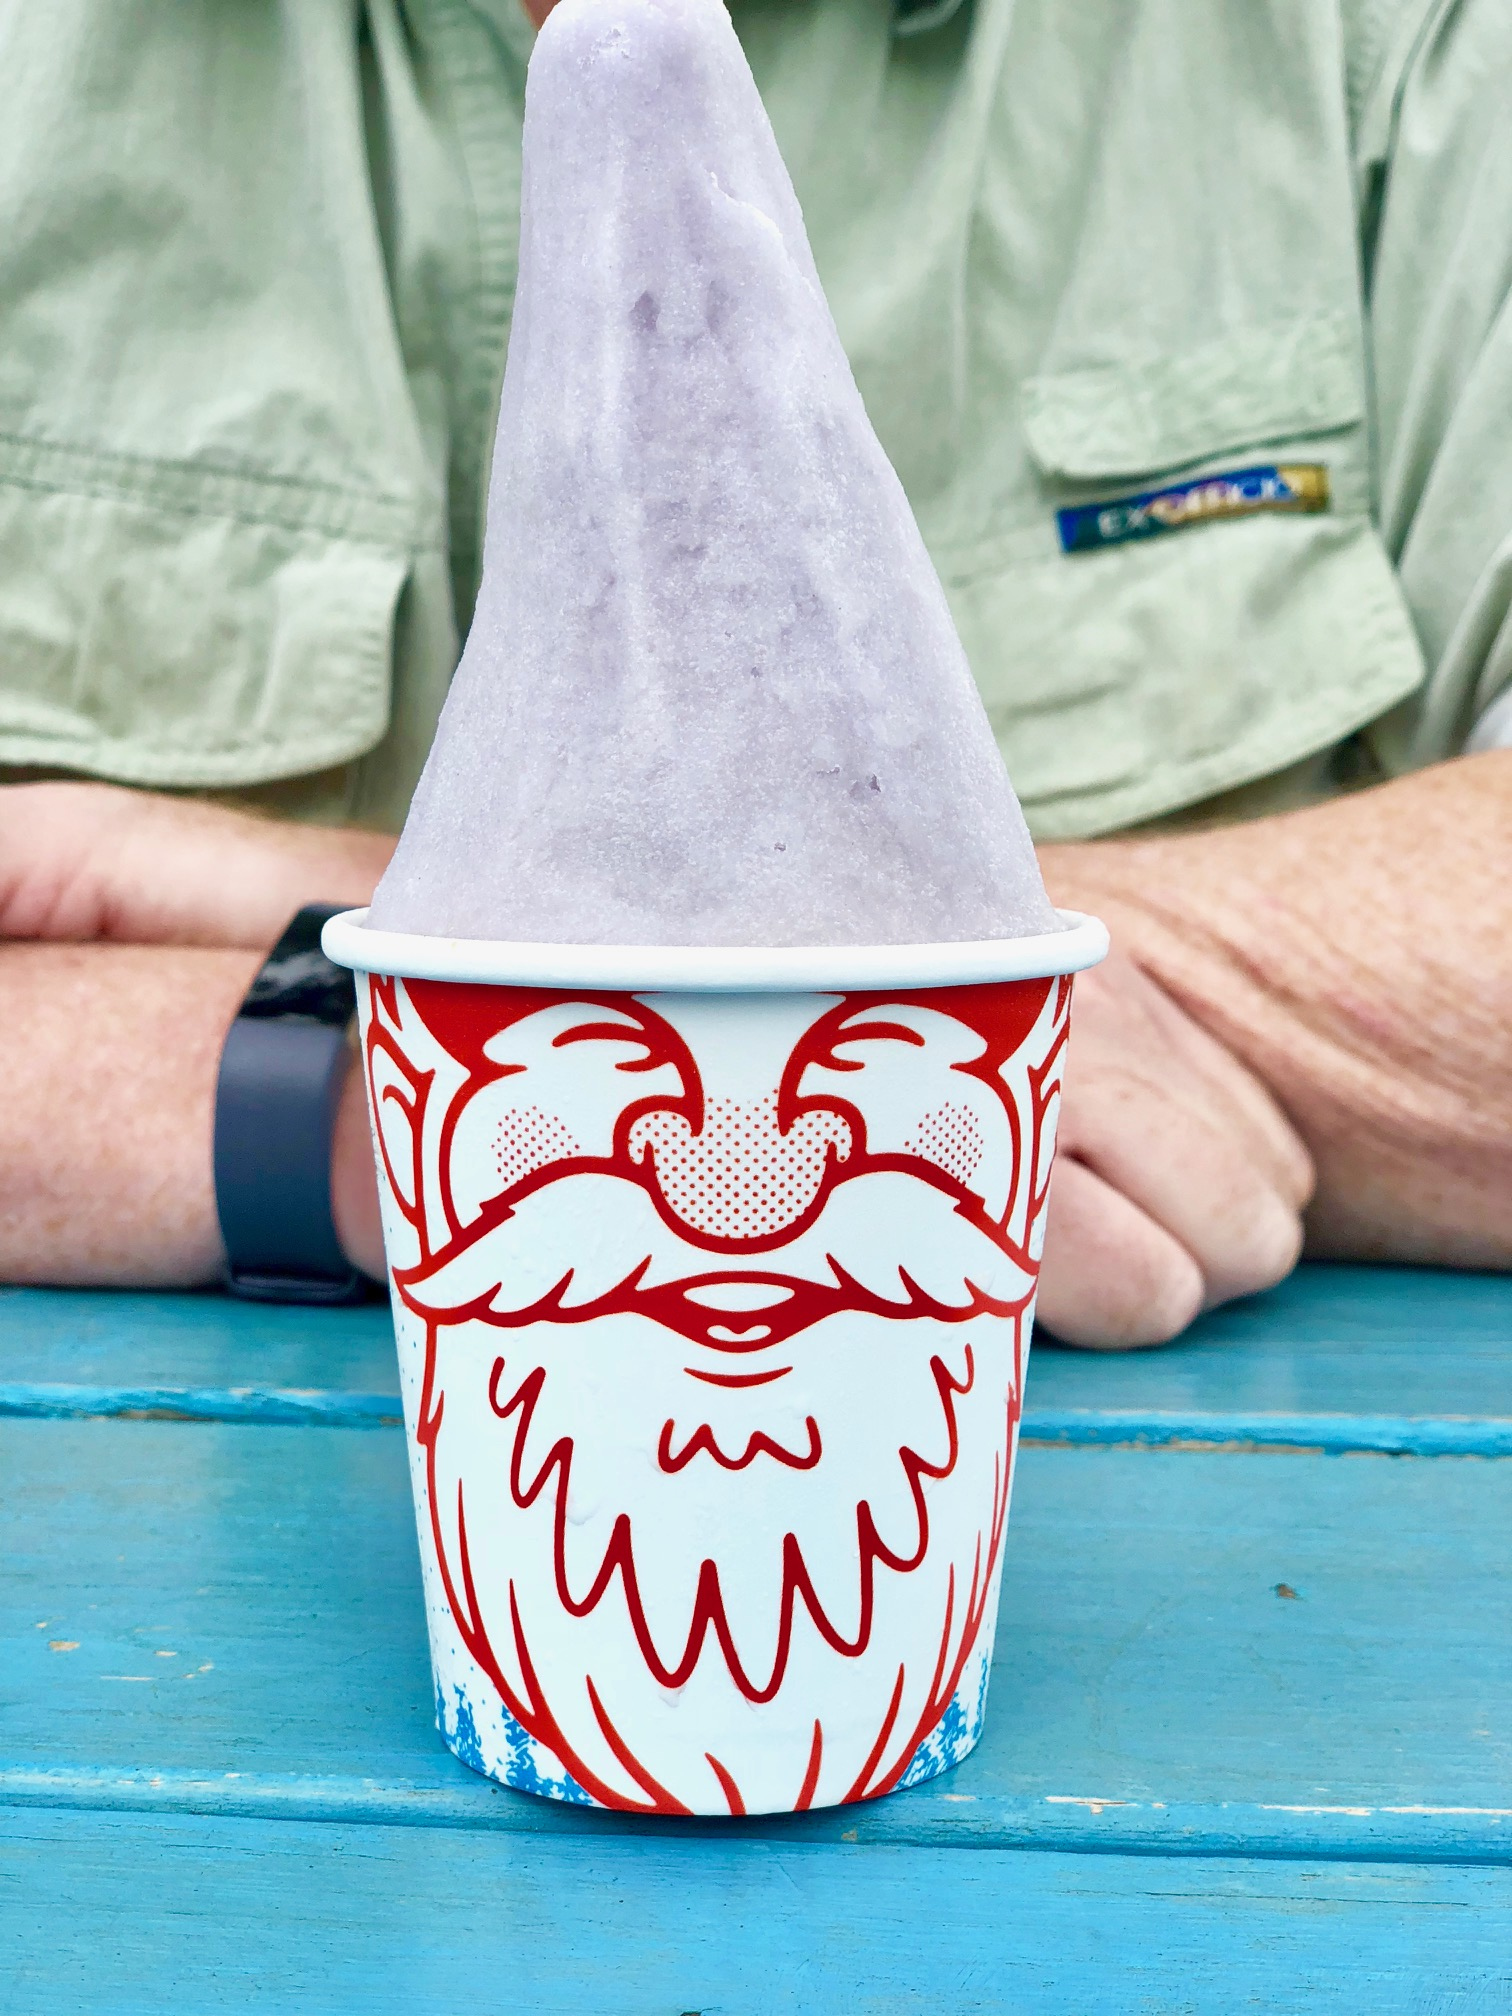 gnome cones in Argyle Texas just outside of Denton #DentonTX